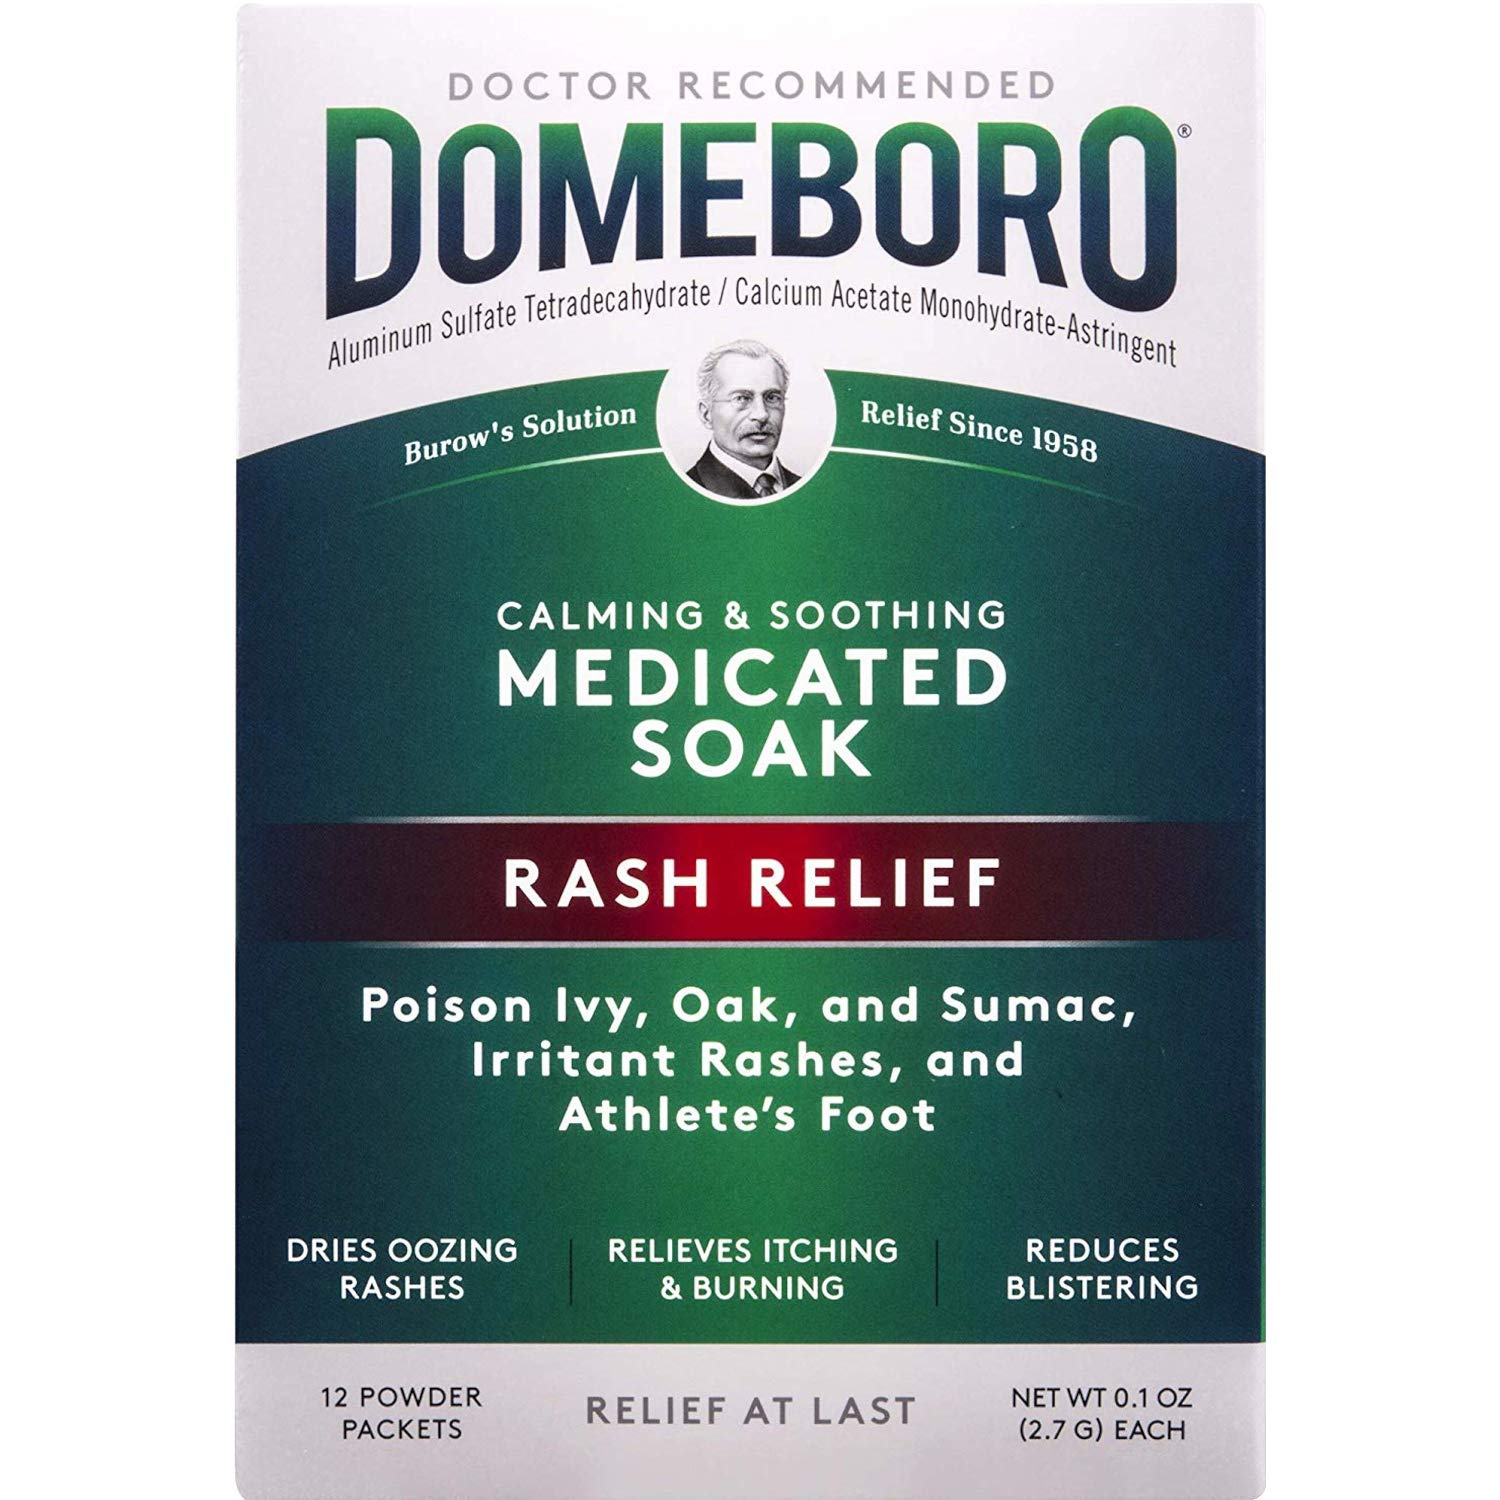 Domeboro Soothing Soak Rash Relief Powder Packets, 12 each (Pack of 4) by Domeboro